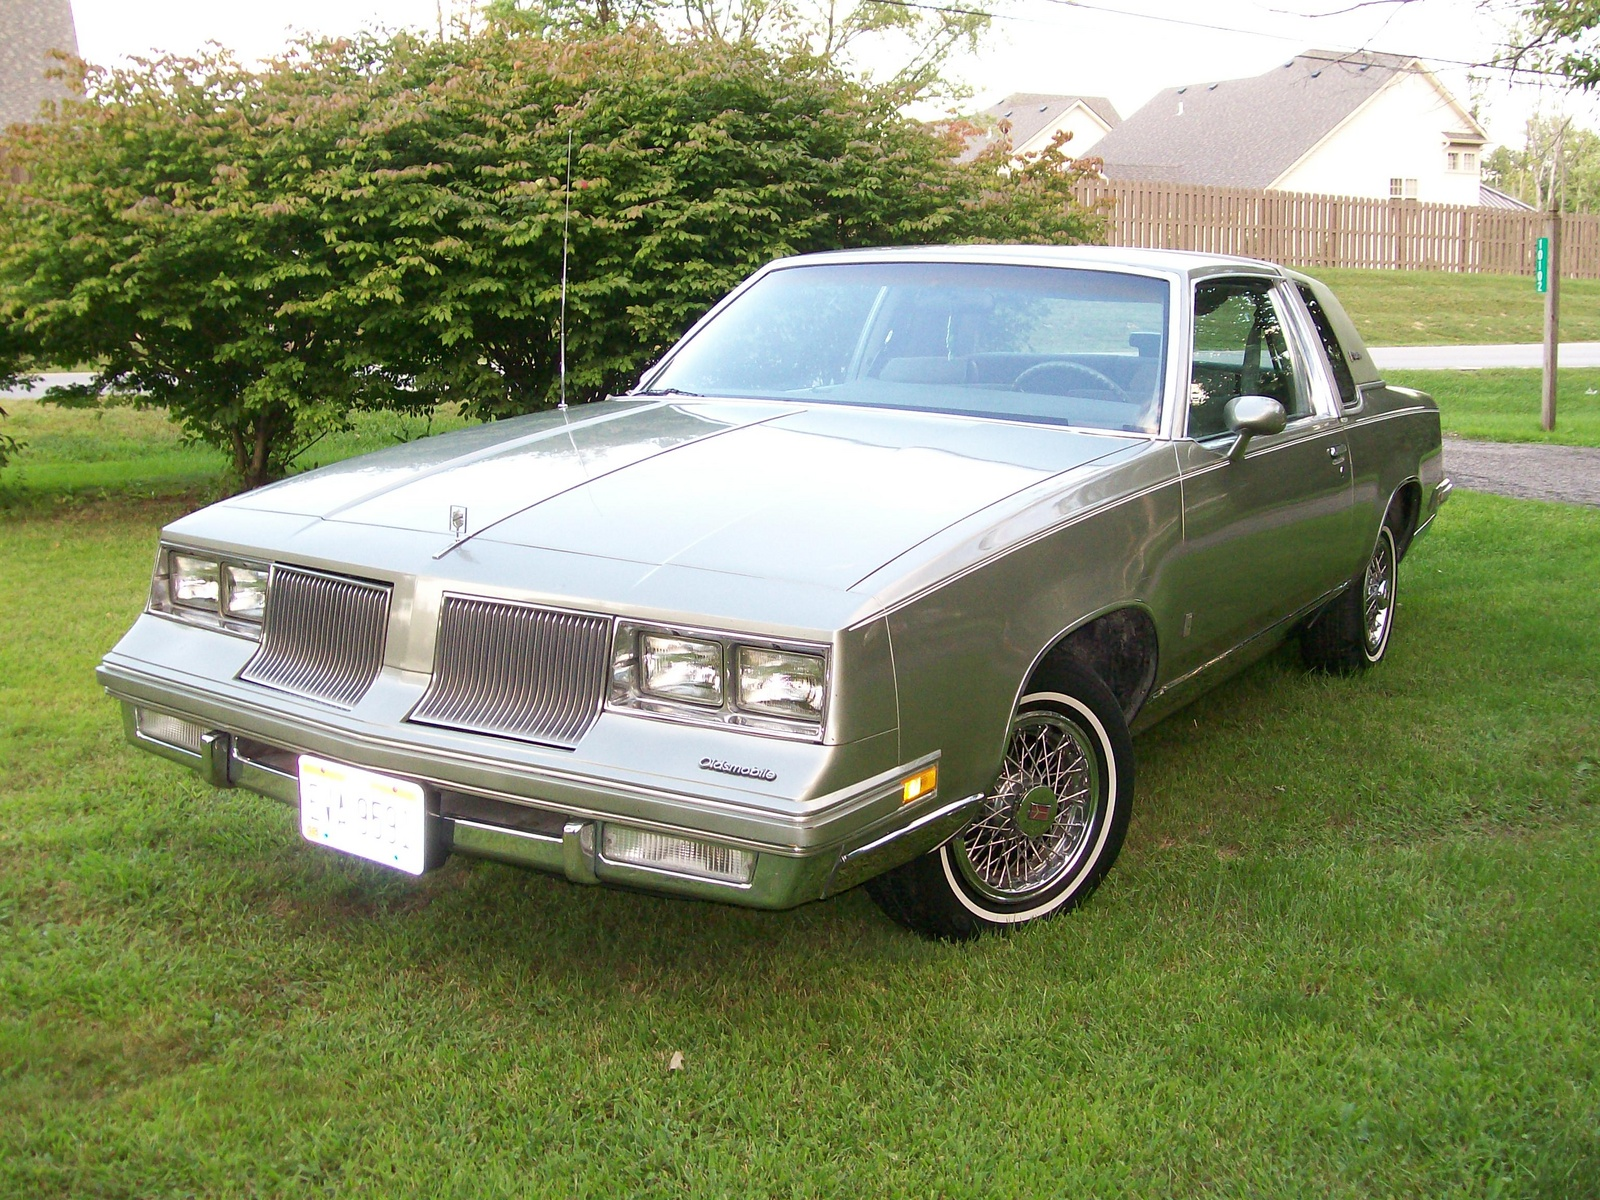 1986 oldsmobile cutlass supreme mine was brown with tan vinyl top cars i have owned pinterest oldsmobile cutlass low rider and cars